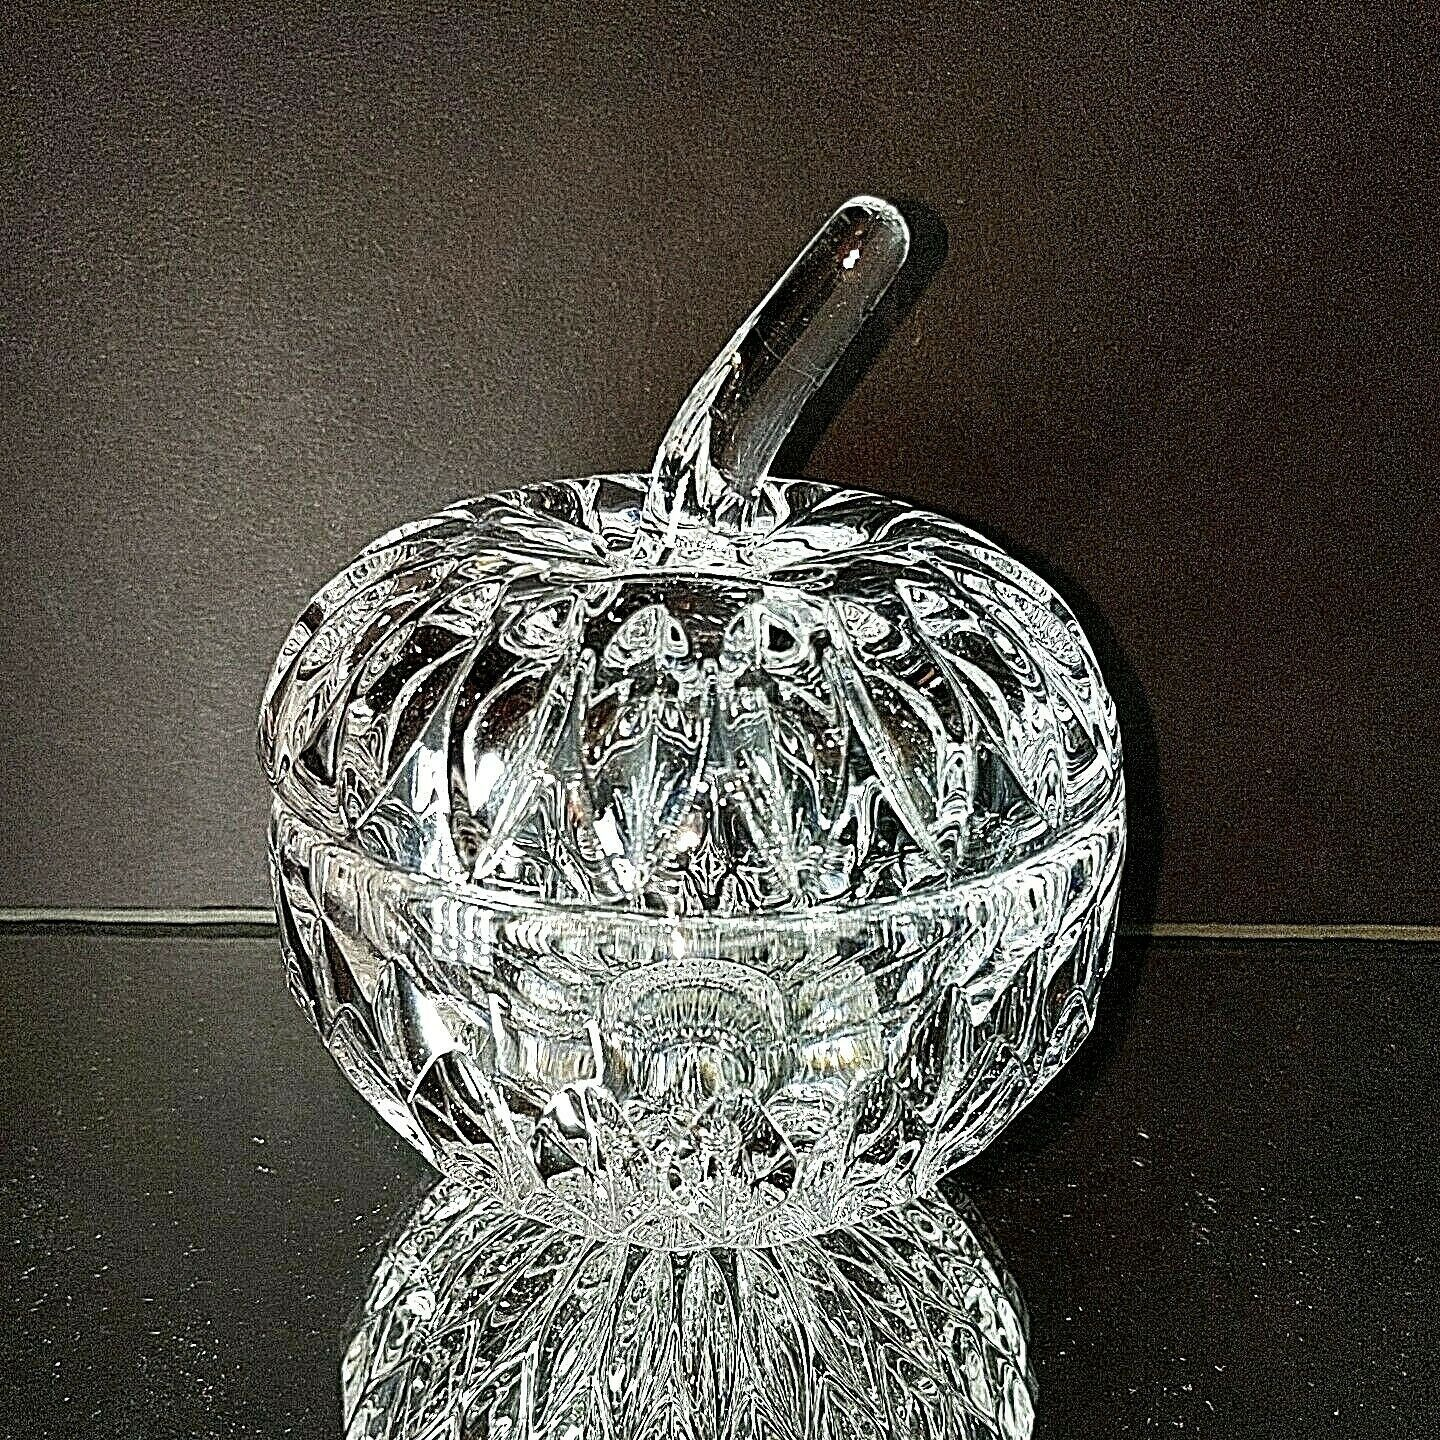 1 (One) GORHAM ALTHEA Lead Crystal Apple Trinket Box LARGE Made in Germany